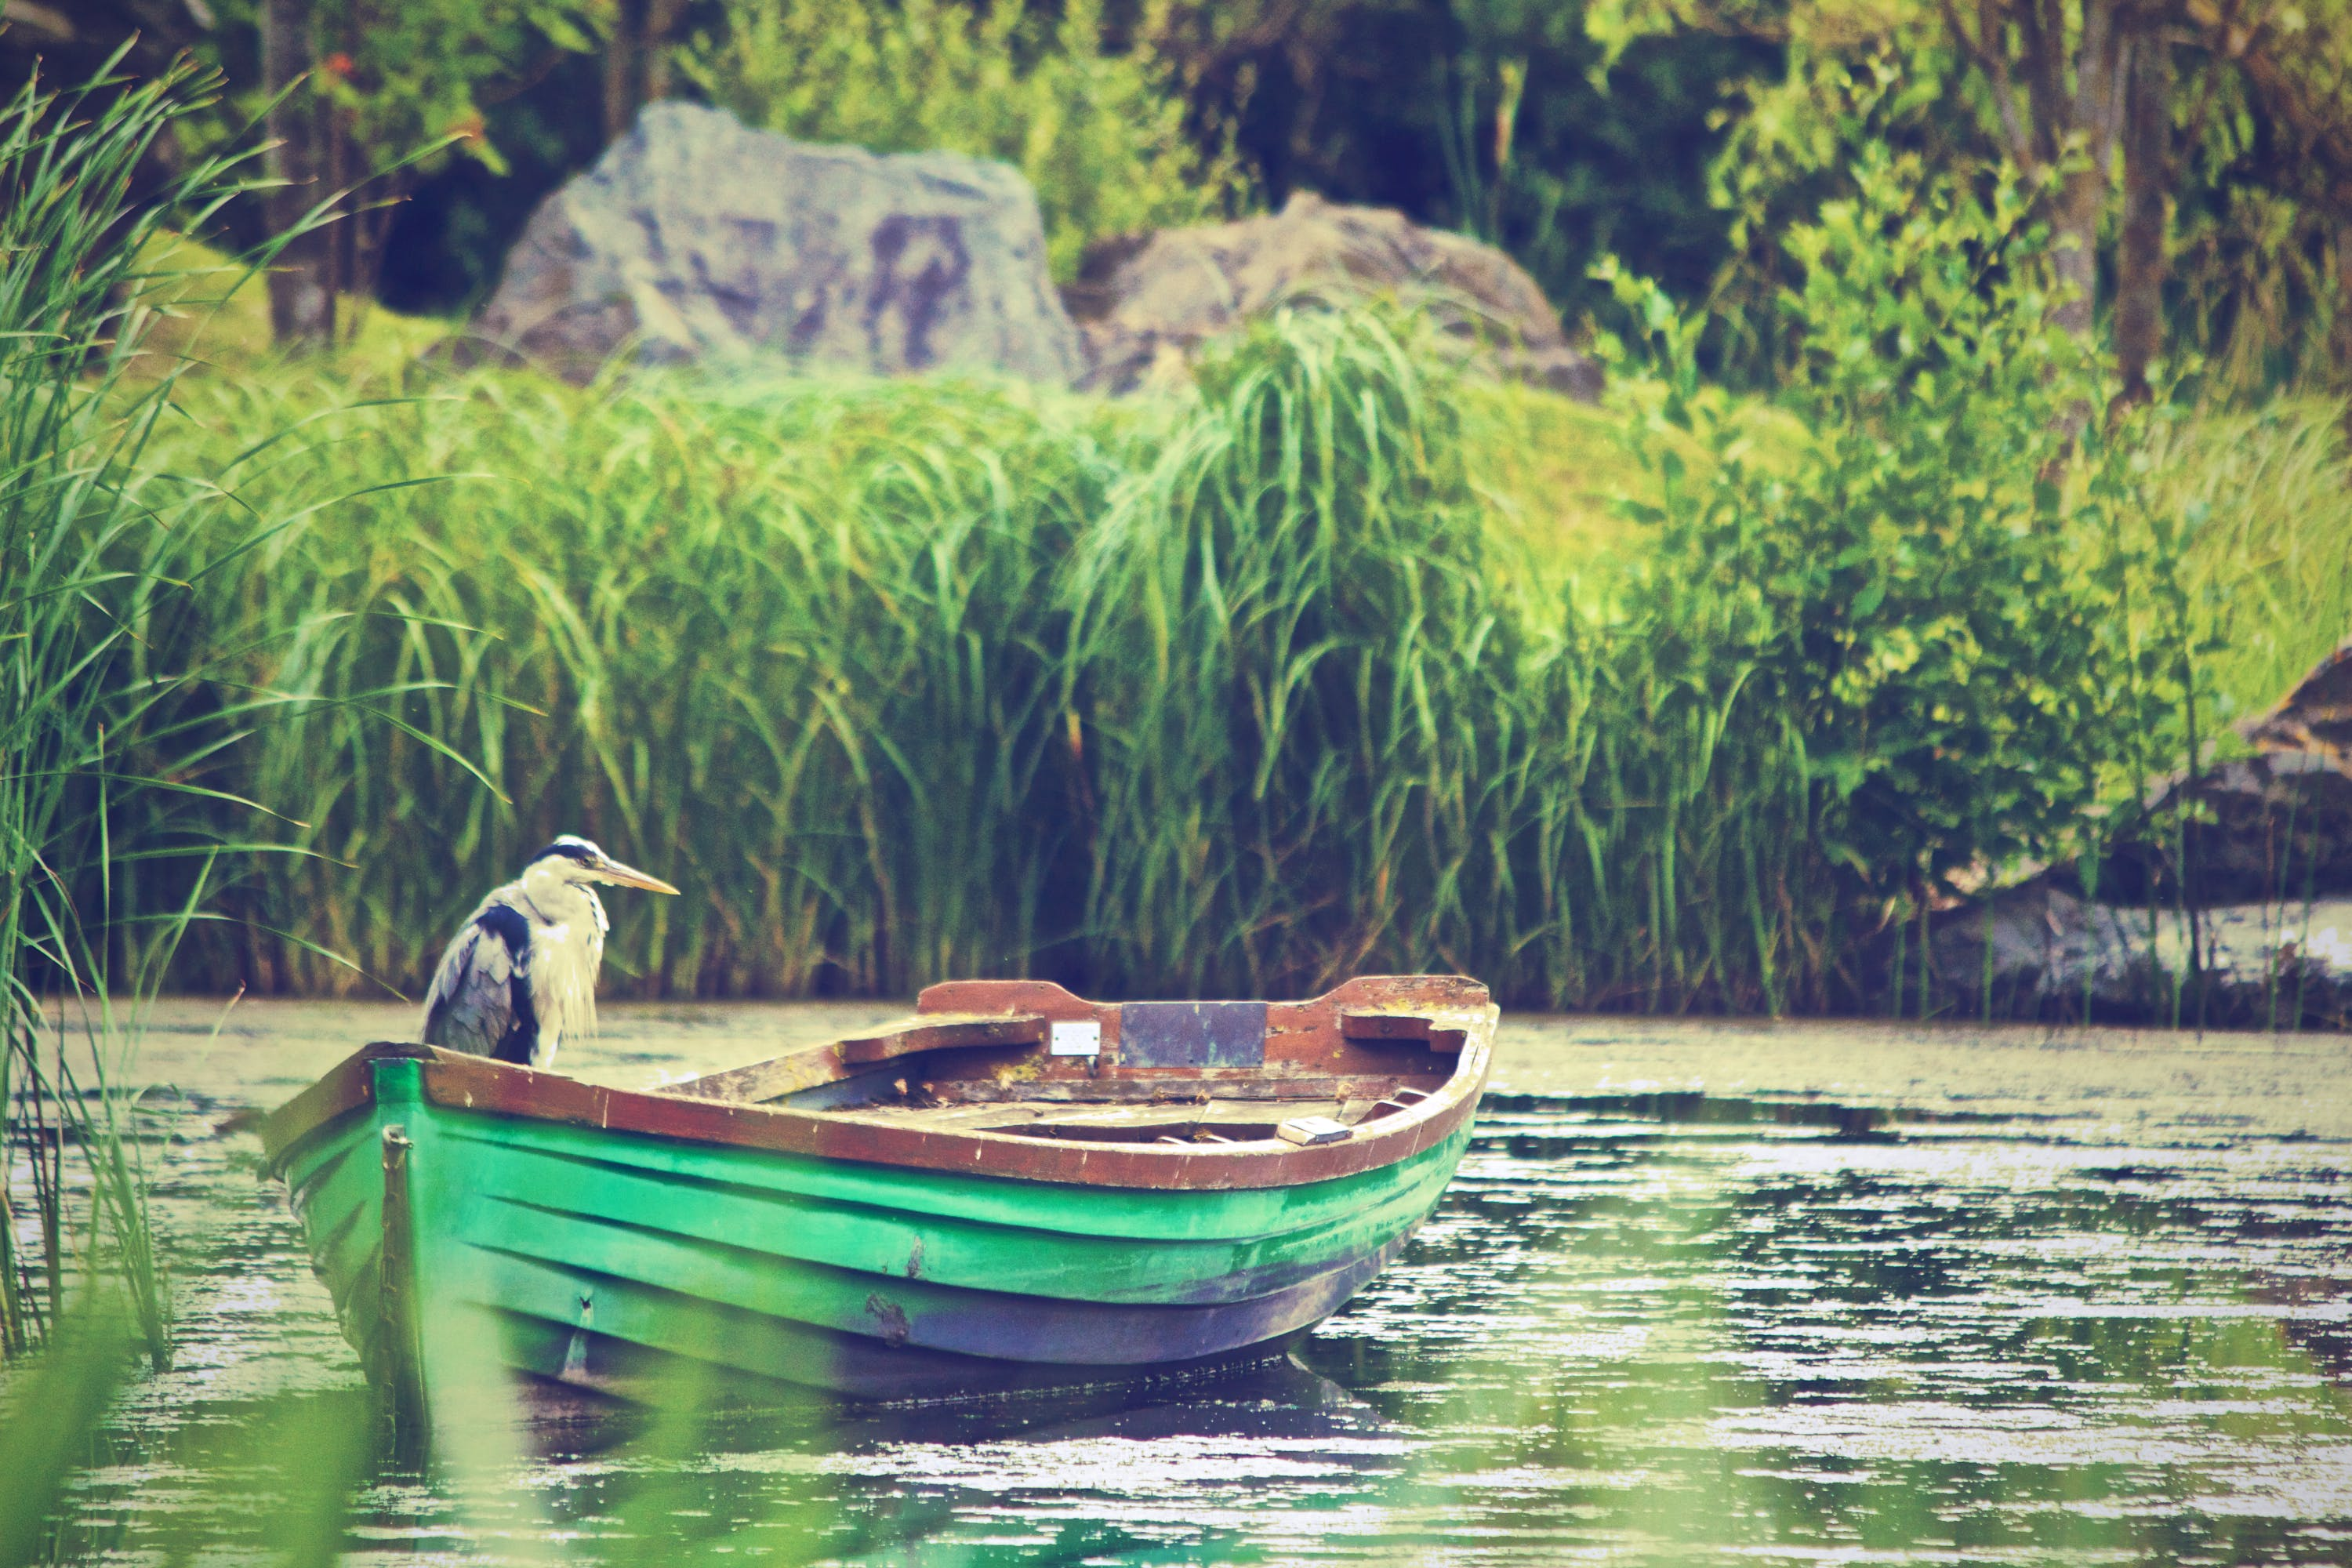 Selective Focus Photography of Great Blue Heron Standing on Green and Brown Rowboat on Calm Body of Water